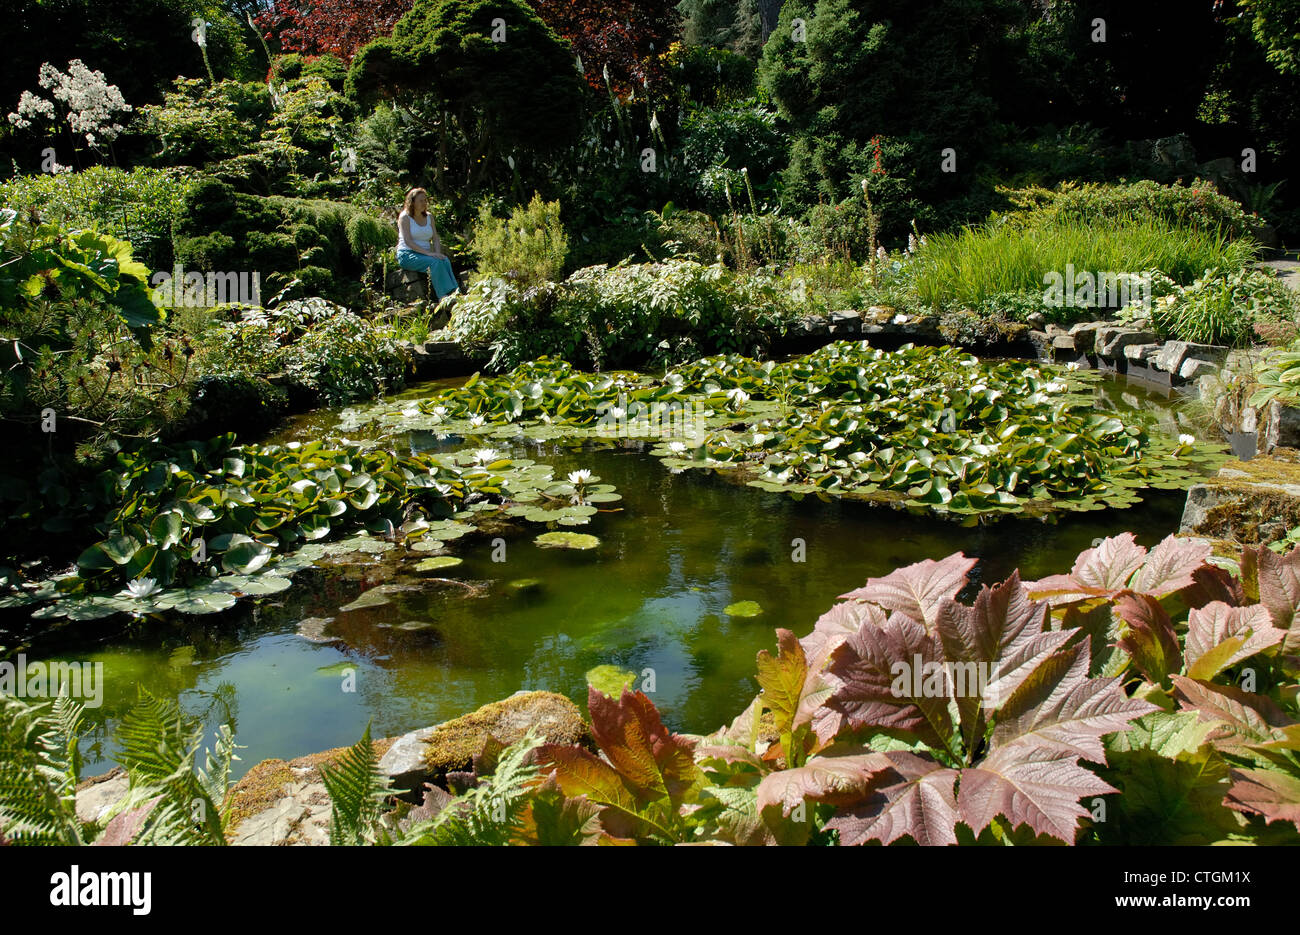 A woman by a pond at Hergest Croft Gardens, Kington, Herefordshire - Stock Image